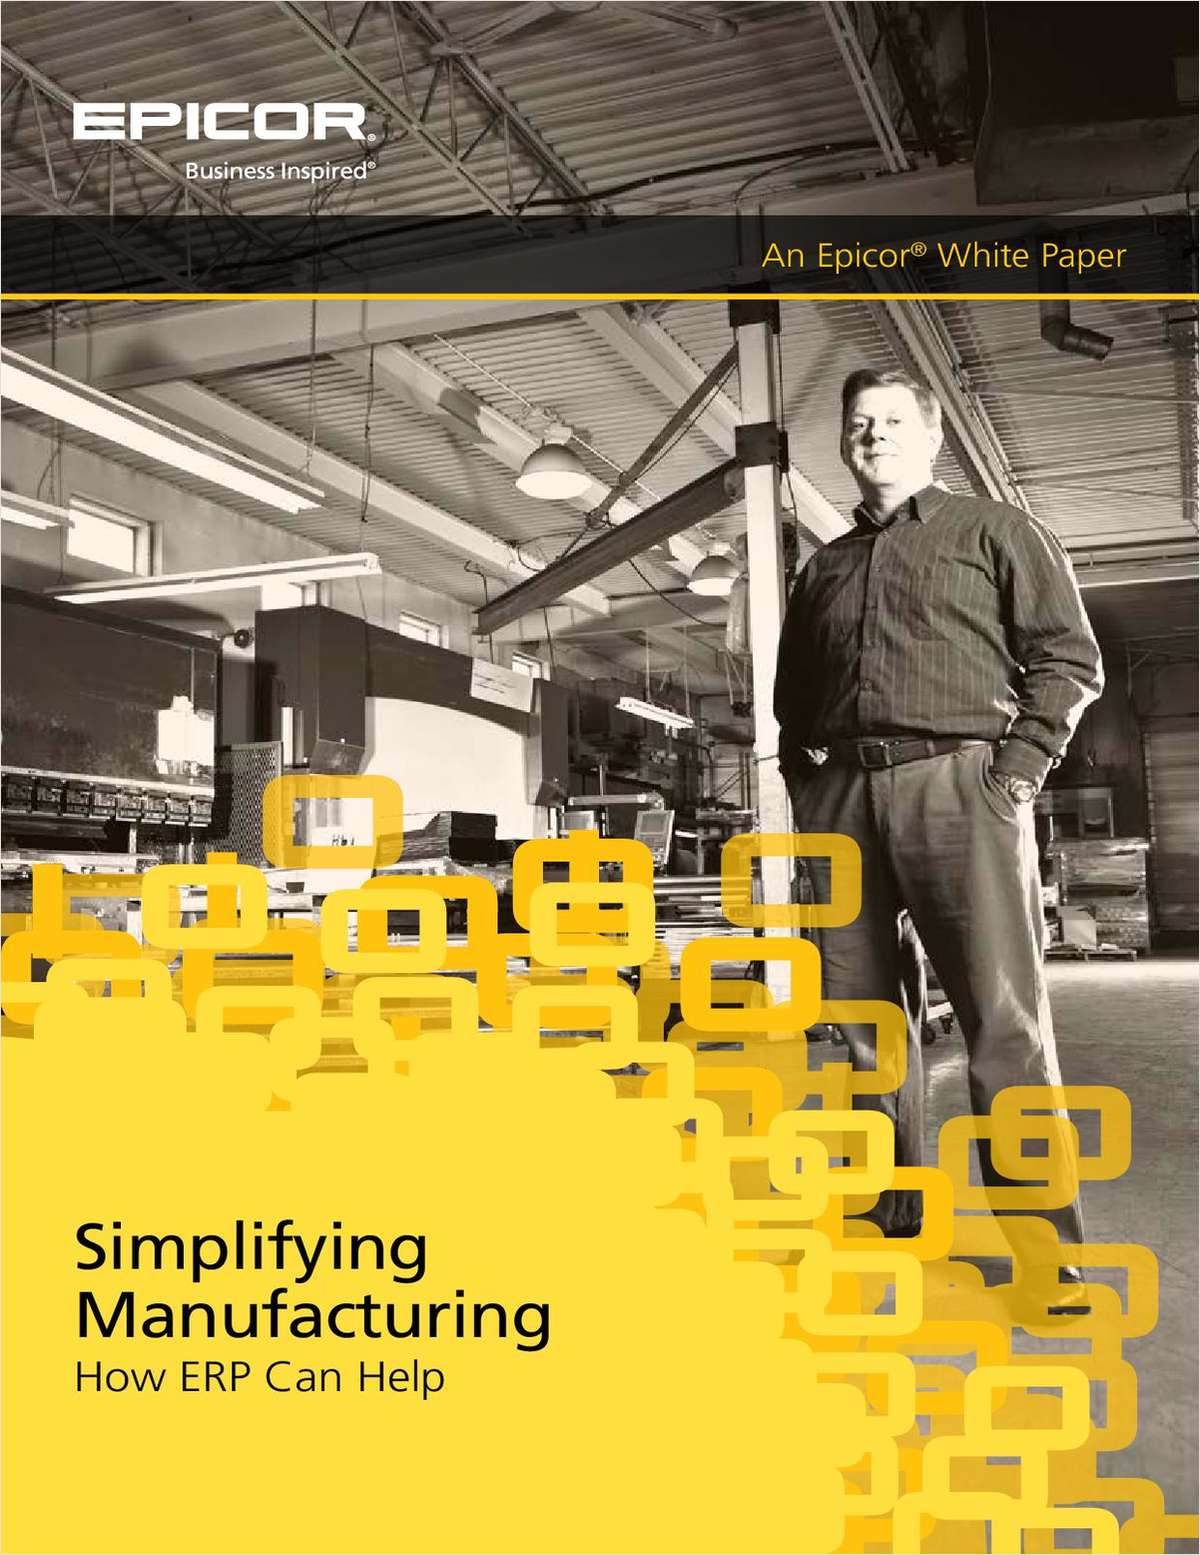 Simplifying Manufacturing. How ERP Can Help